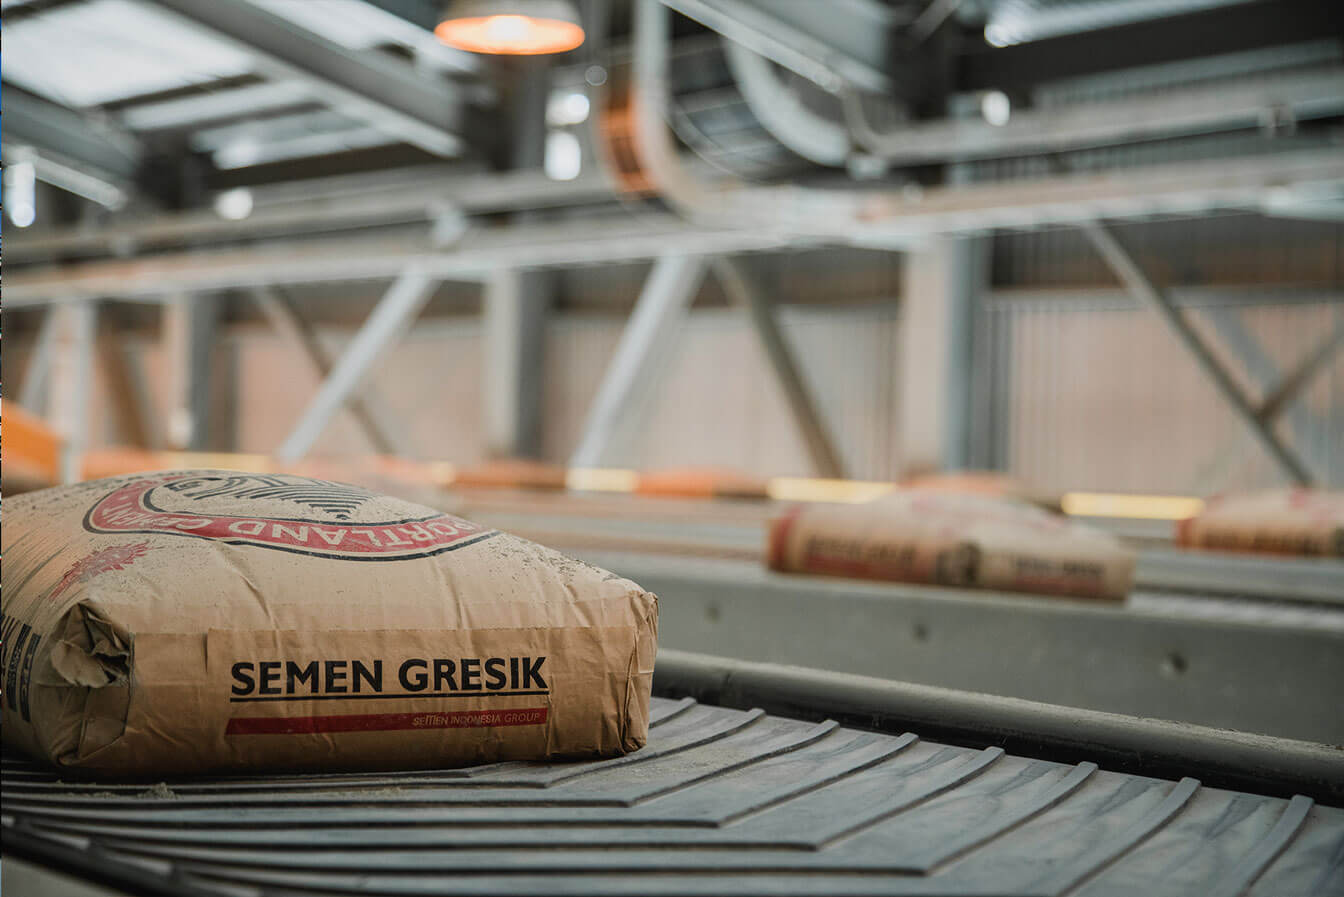 History of the Semen Gresik Factory, the Largest Cement Company